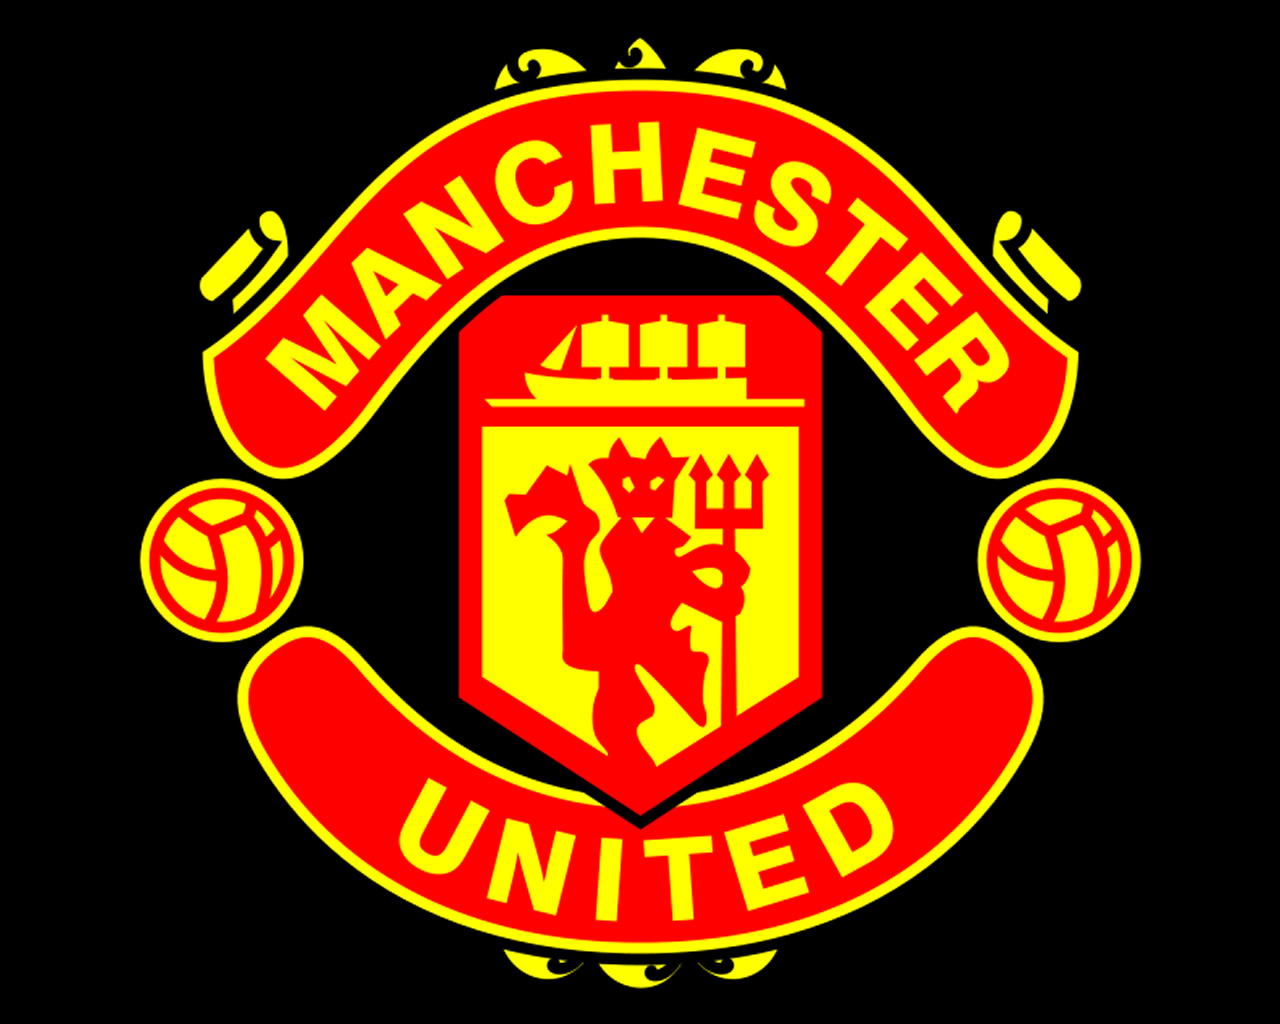 The logo has no use of the word MANCHESTER or the Red Devil mascot, and the ship is somewhat different. There is a reference instead to the 'Red Army', ...